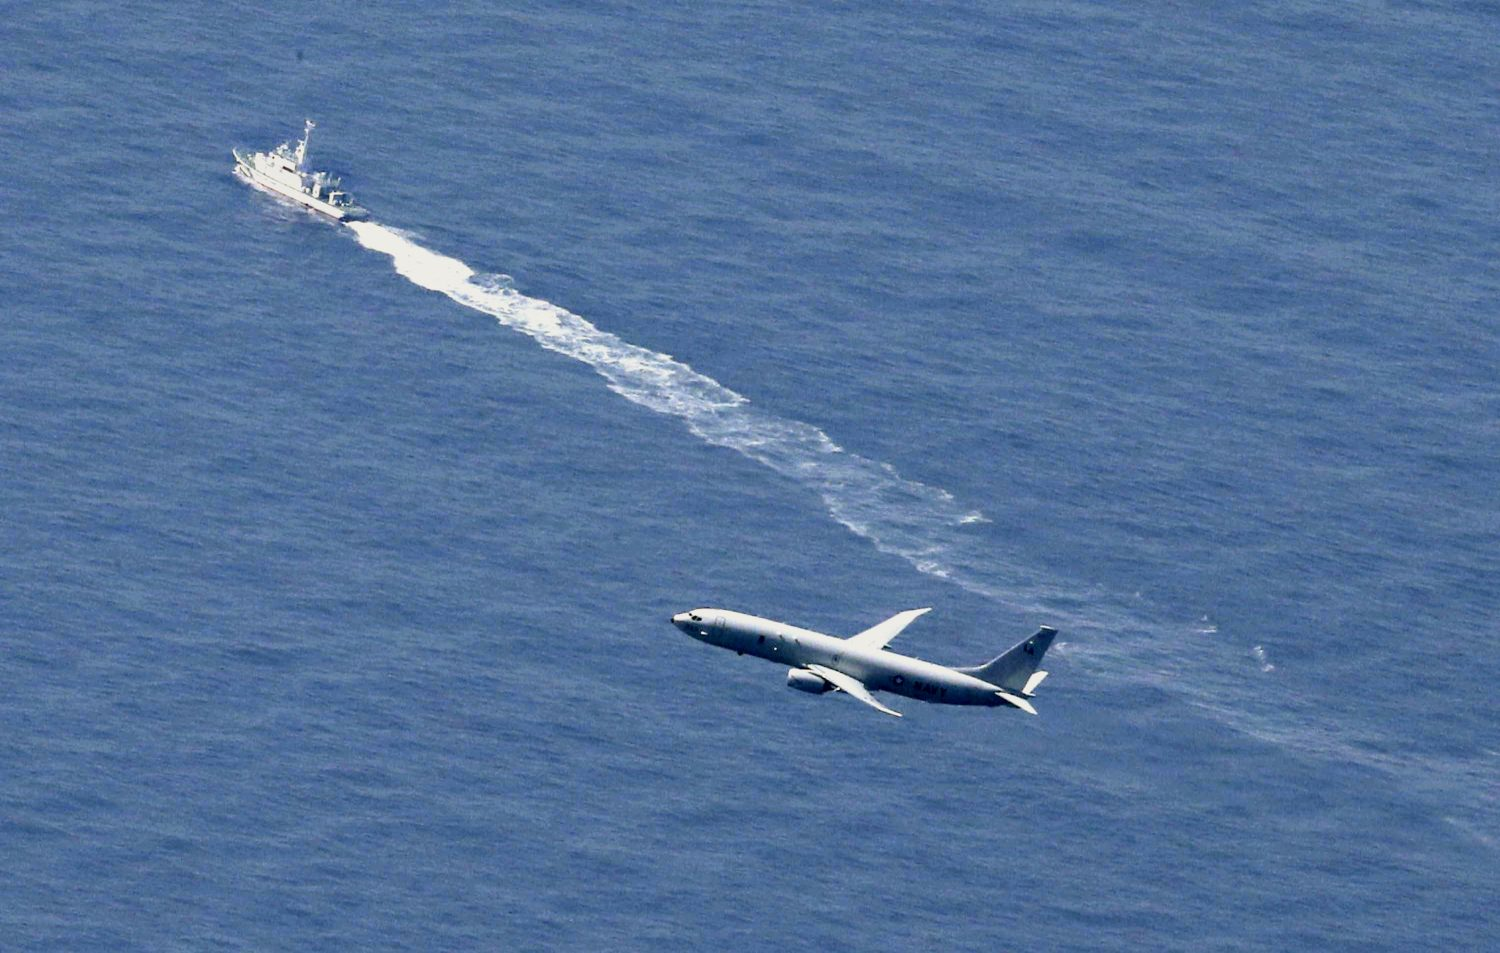 A Japan Coast Guard vessel and a U.S. military aircraft conduct rescue and search operations at the site where an Air Self-Defense Force's F-35A stealth fighter jet crashed during an exercise on April 9, 2019, off Aomori prefecture, Japan, in this photo taken by Kyodo April 10, 2019. Mandatory credit Kyodo/via REUTERS